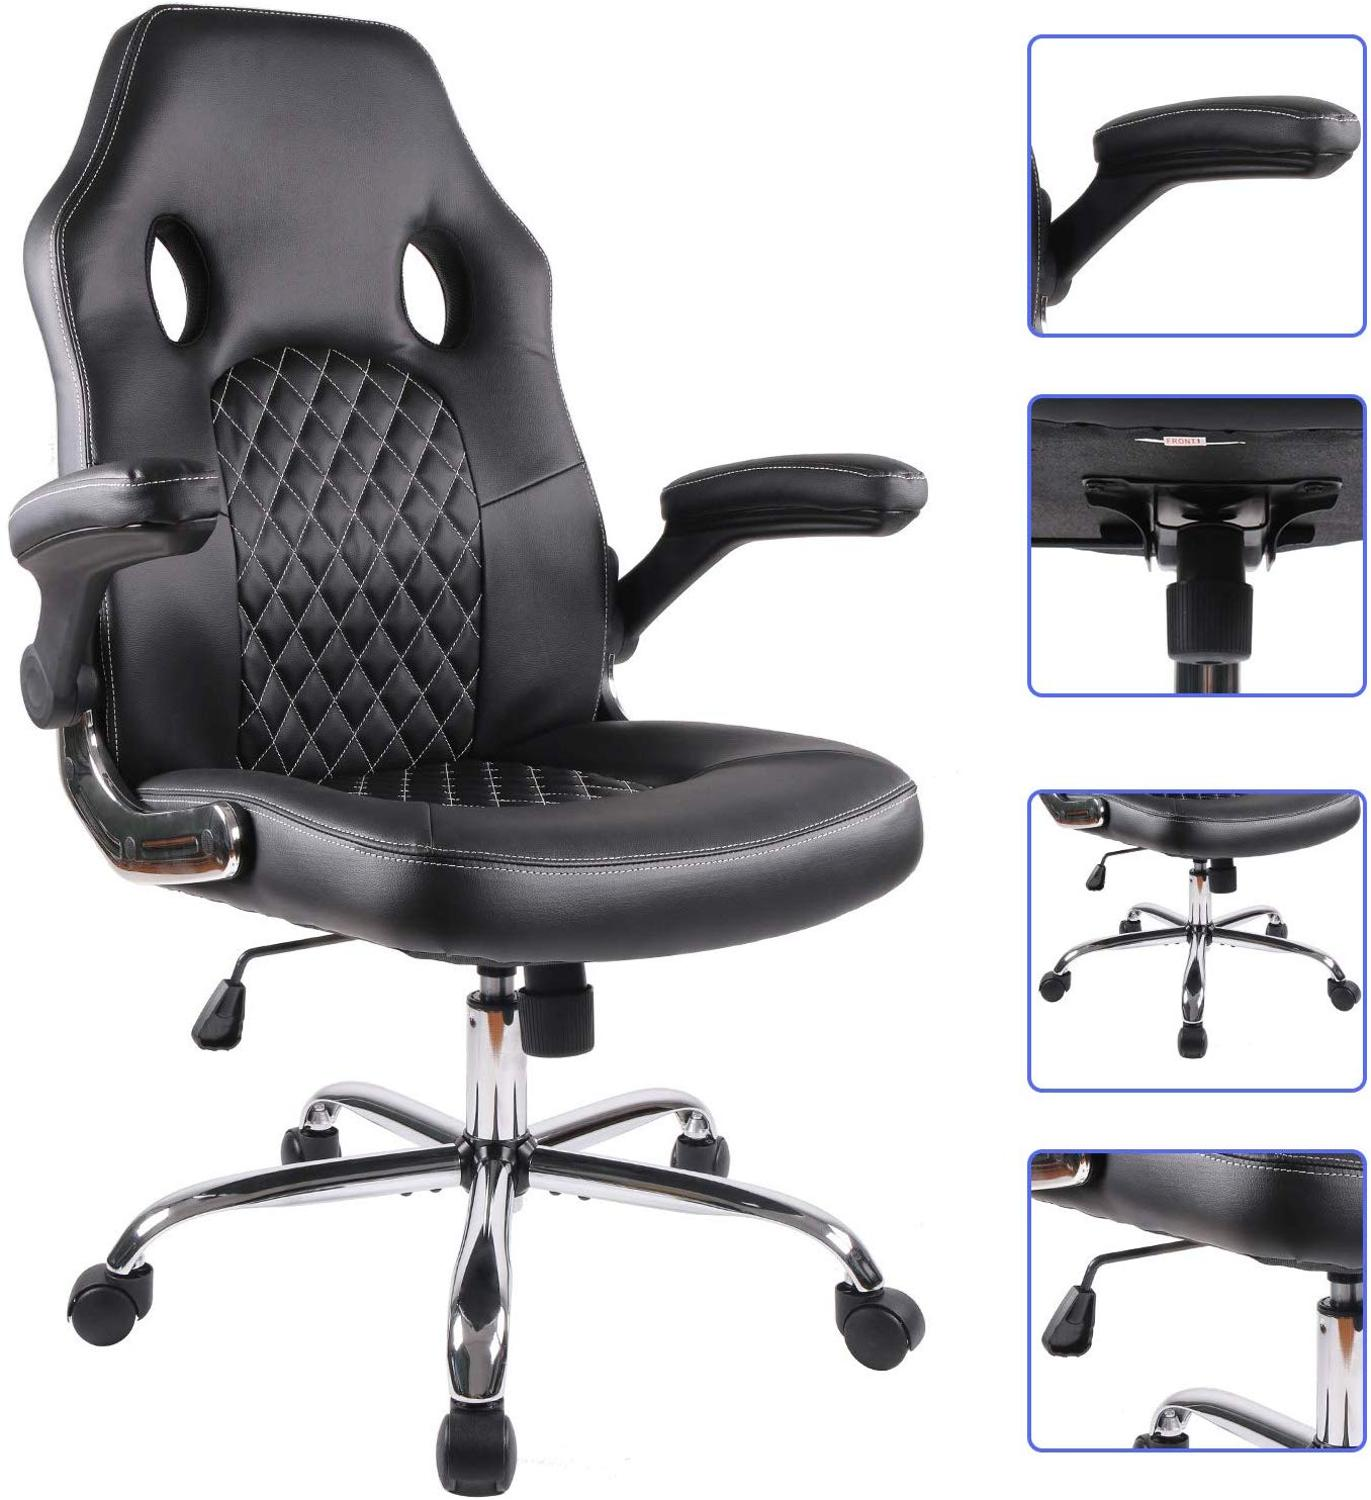 Executive Leather Gaming Chairs Best Children's Lighting & Home Decor Online Store